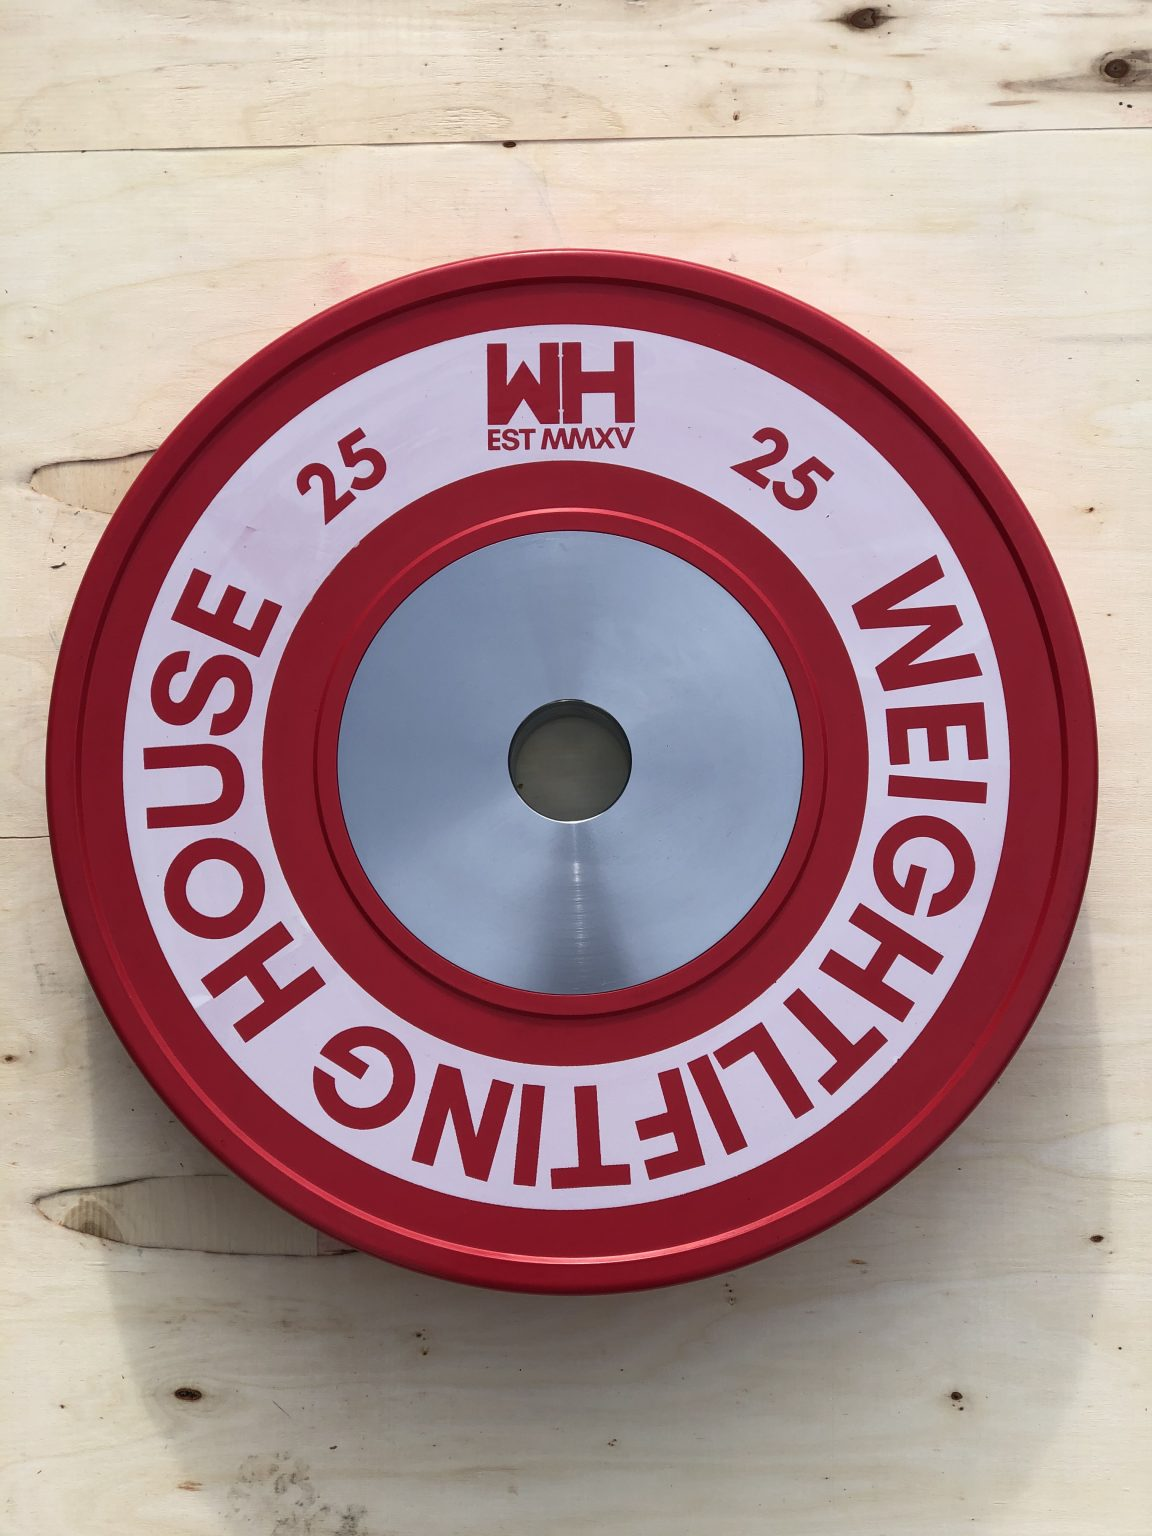 25kg weightlifting house plate